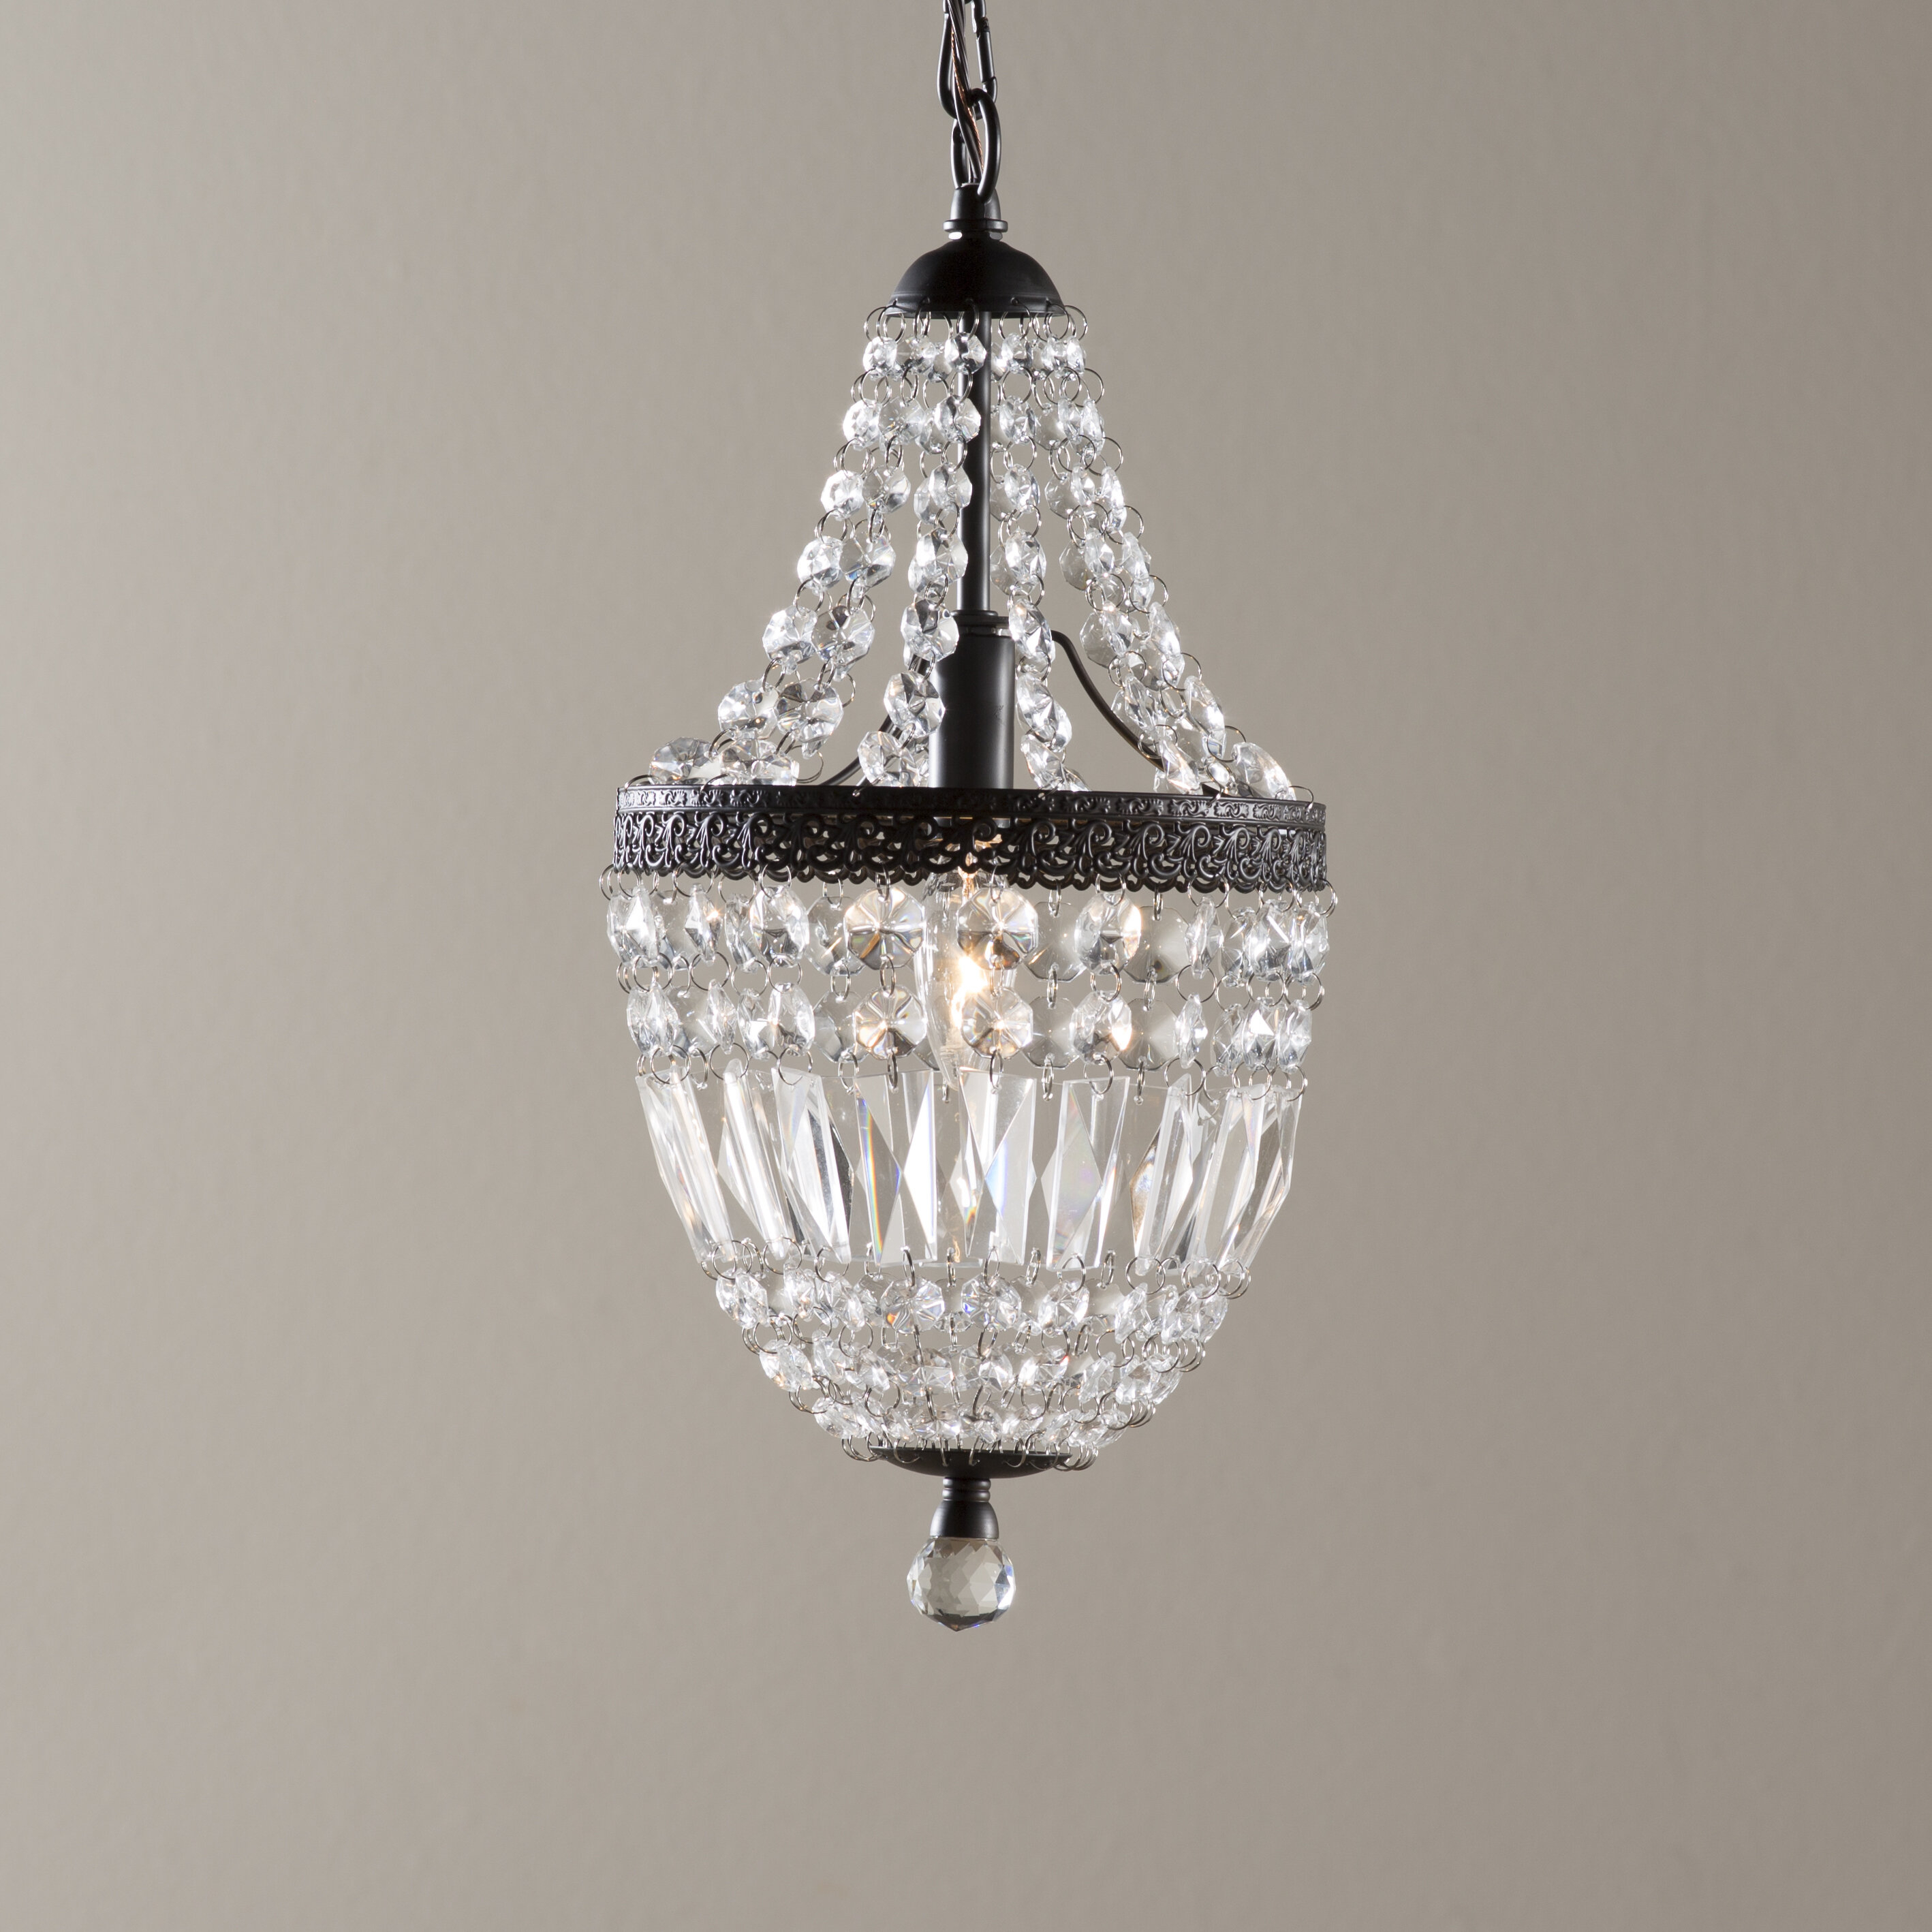 "Crystal Mini (less Than 10"" Wide) Pendant Lighting You'll In Kraker 1 Light Single Cylinder Pendants (View 16 of 30)"